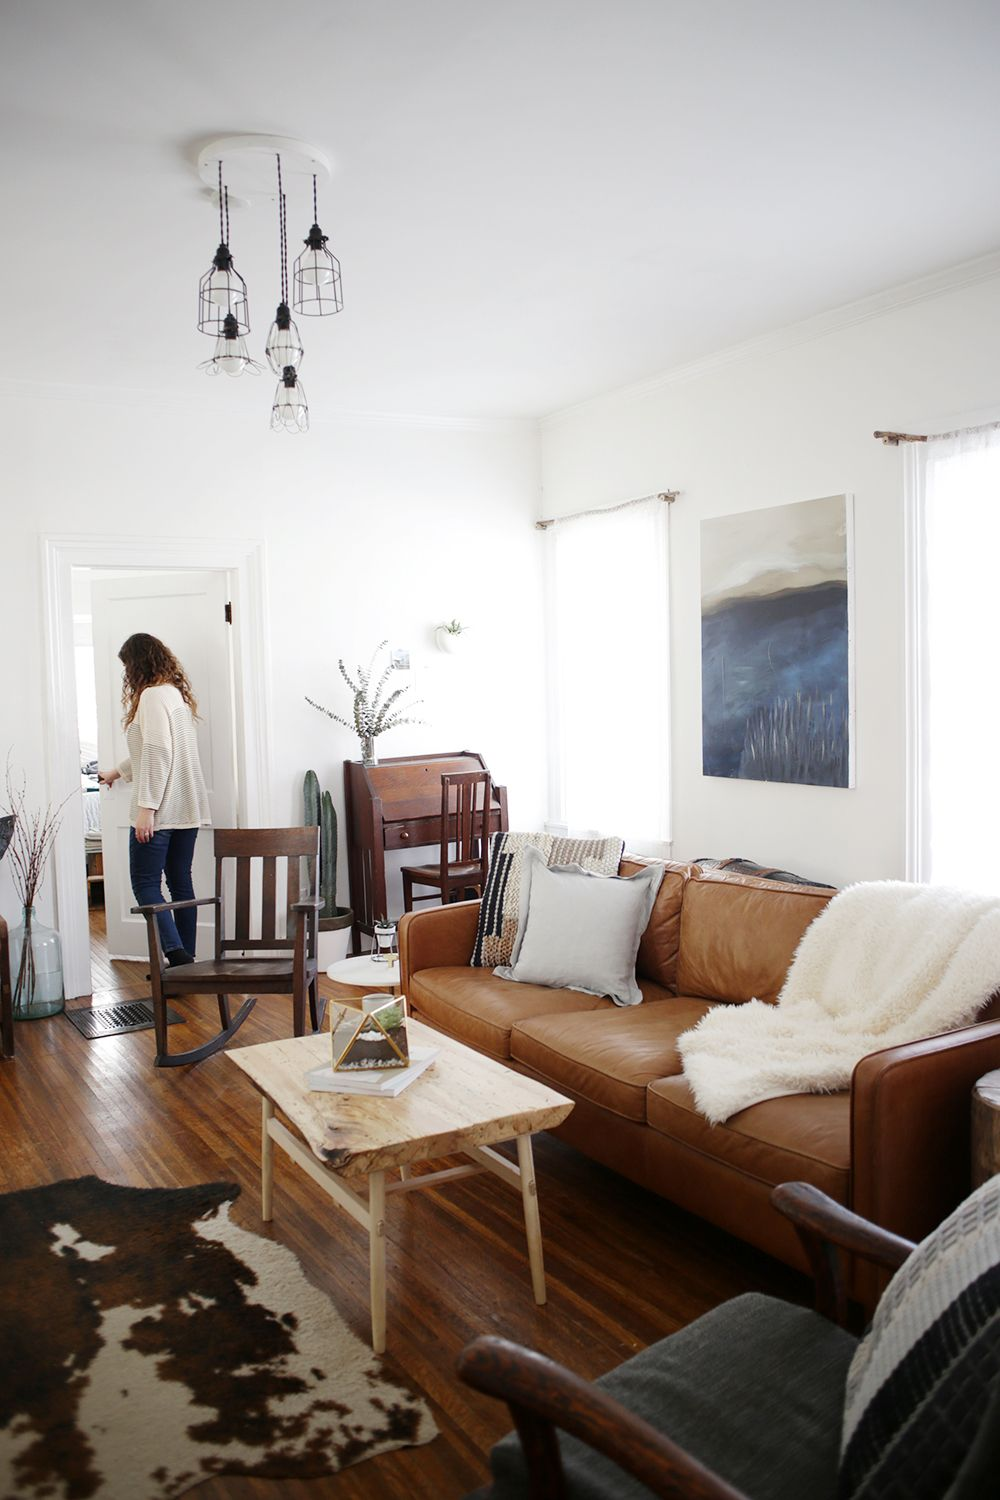 Redecorate My Living Room: We Teamed Up With The Merrythought To Redecorate This